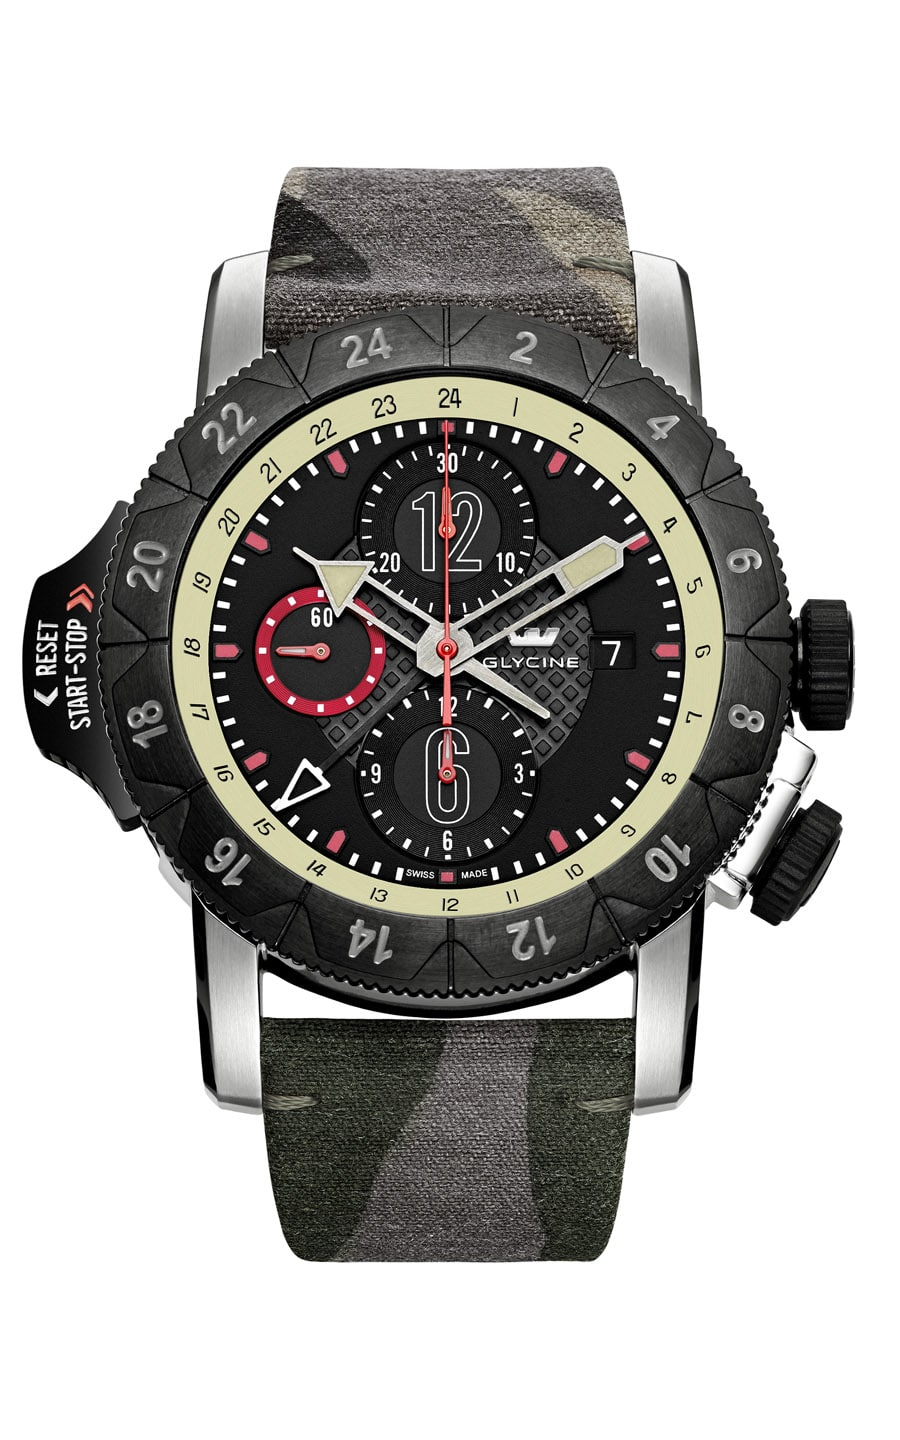 Glycine: Airman Airfighter mit Camouflage-Band